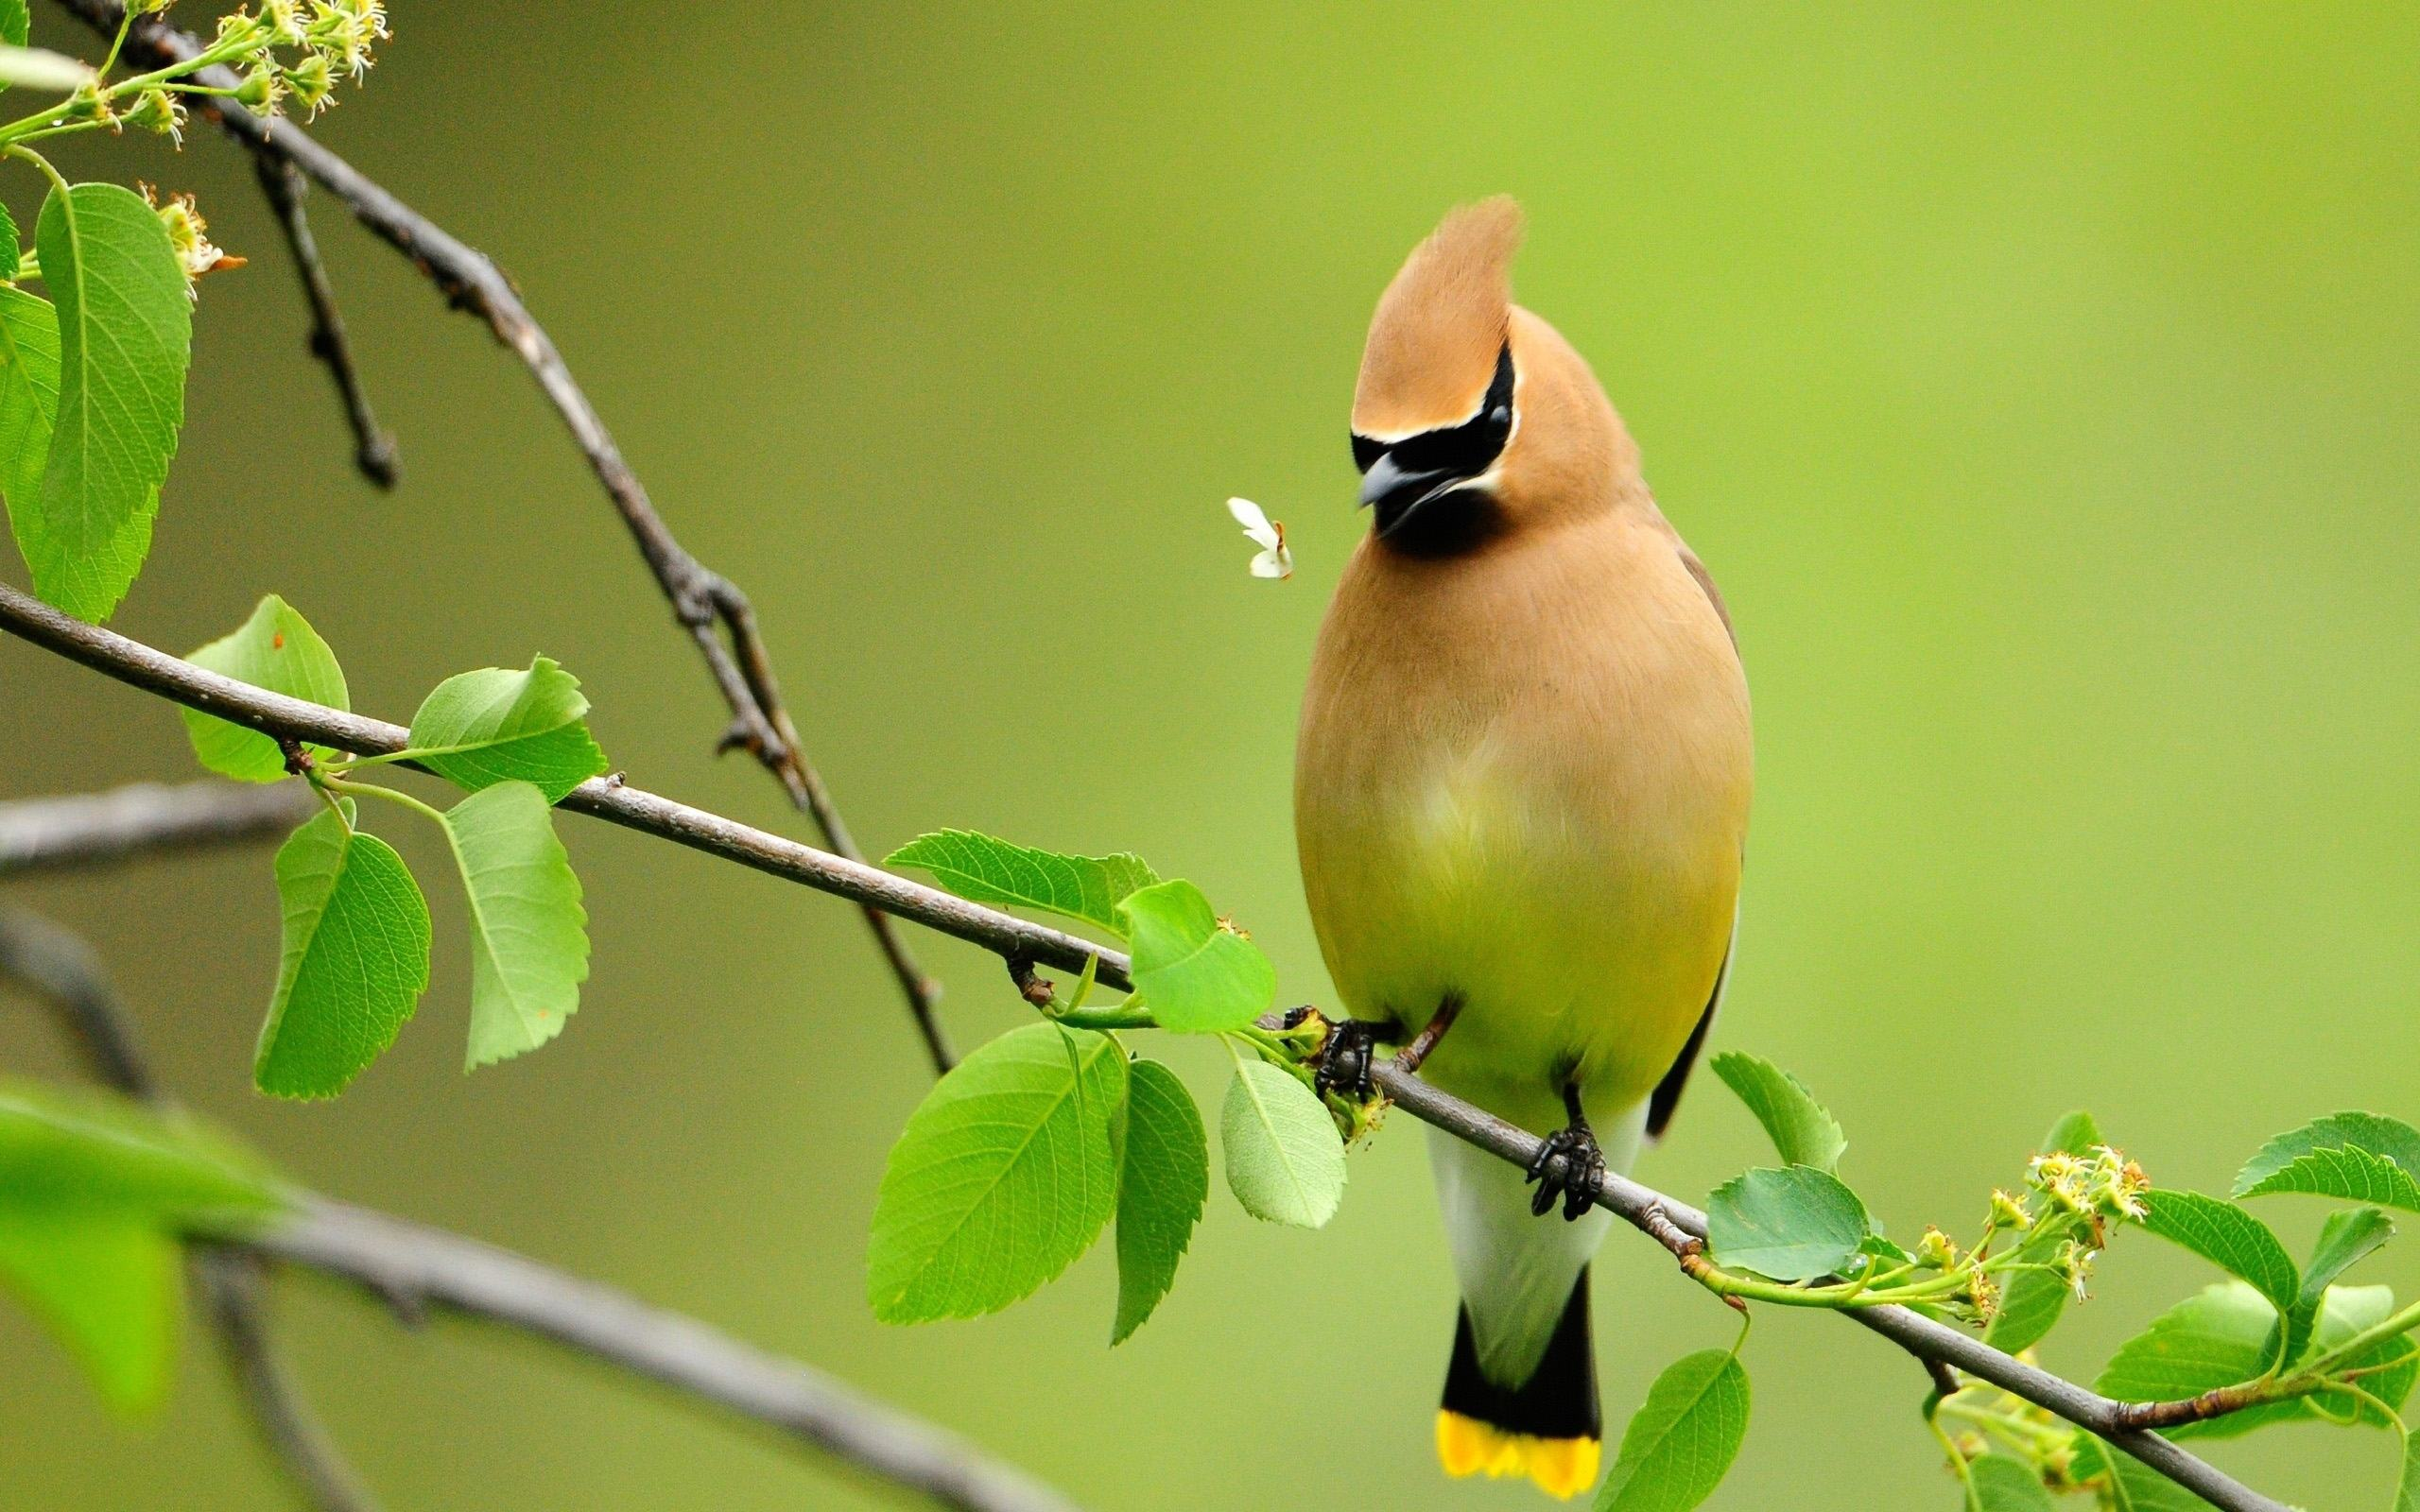 waxwing bird high  resoultion background desktop wallpaper picture